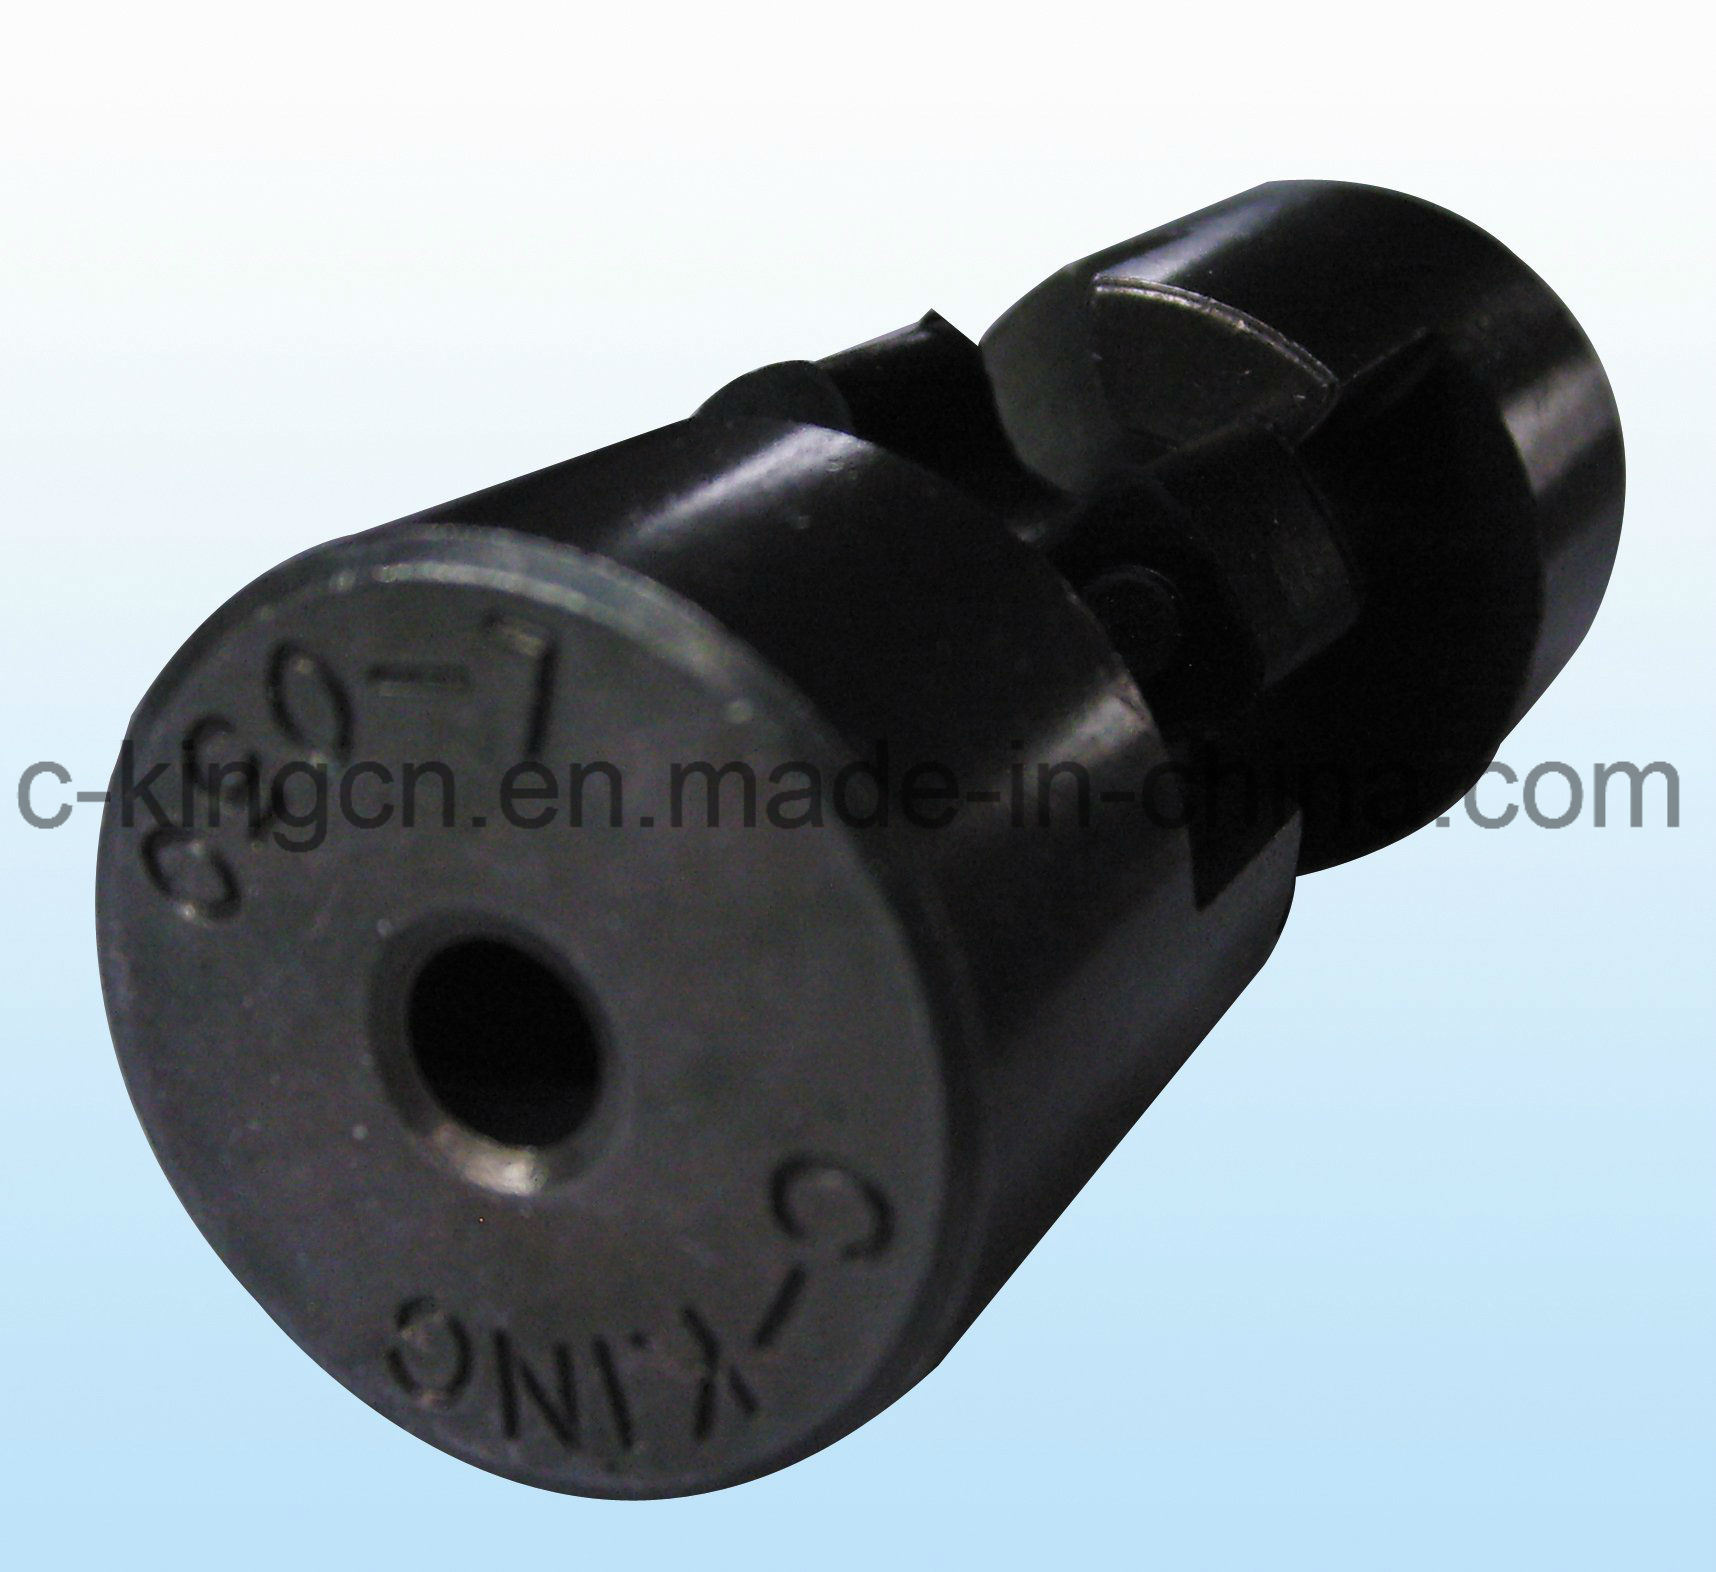 C-King Cast Iron Jaw Coupling (CL-090)